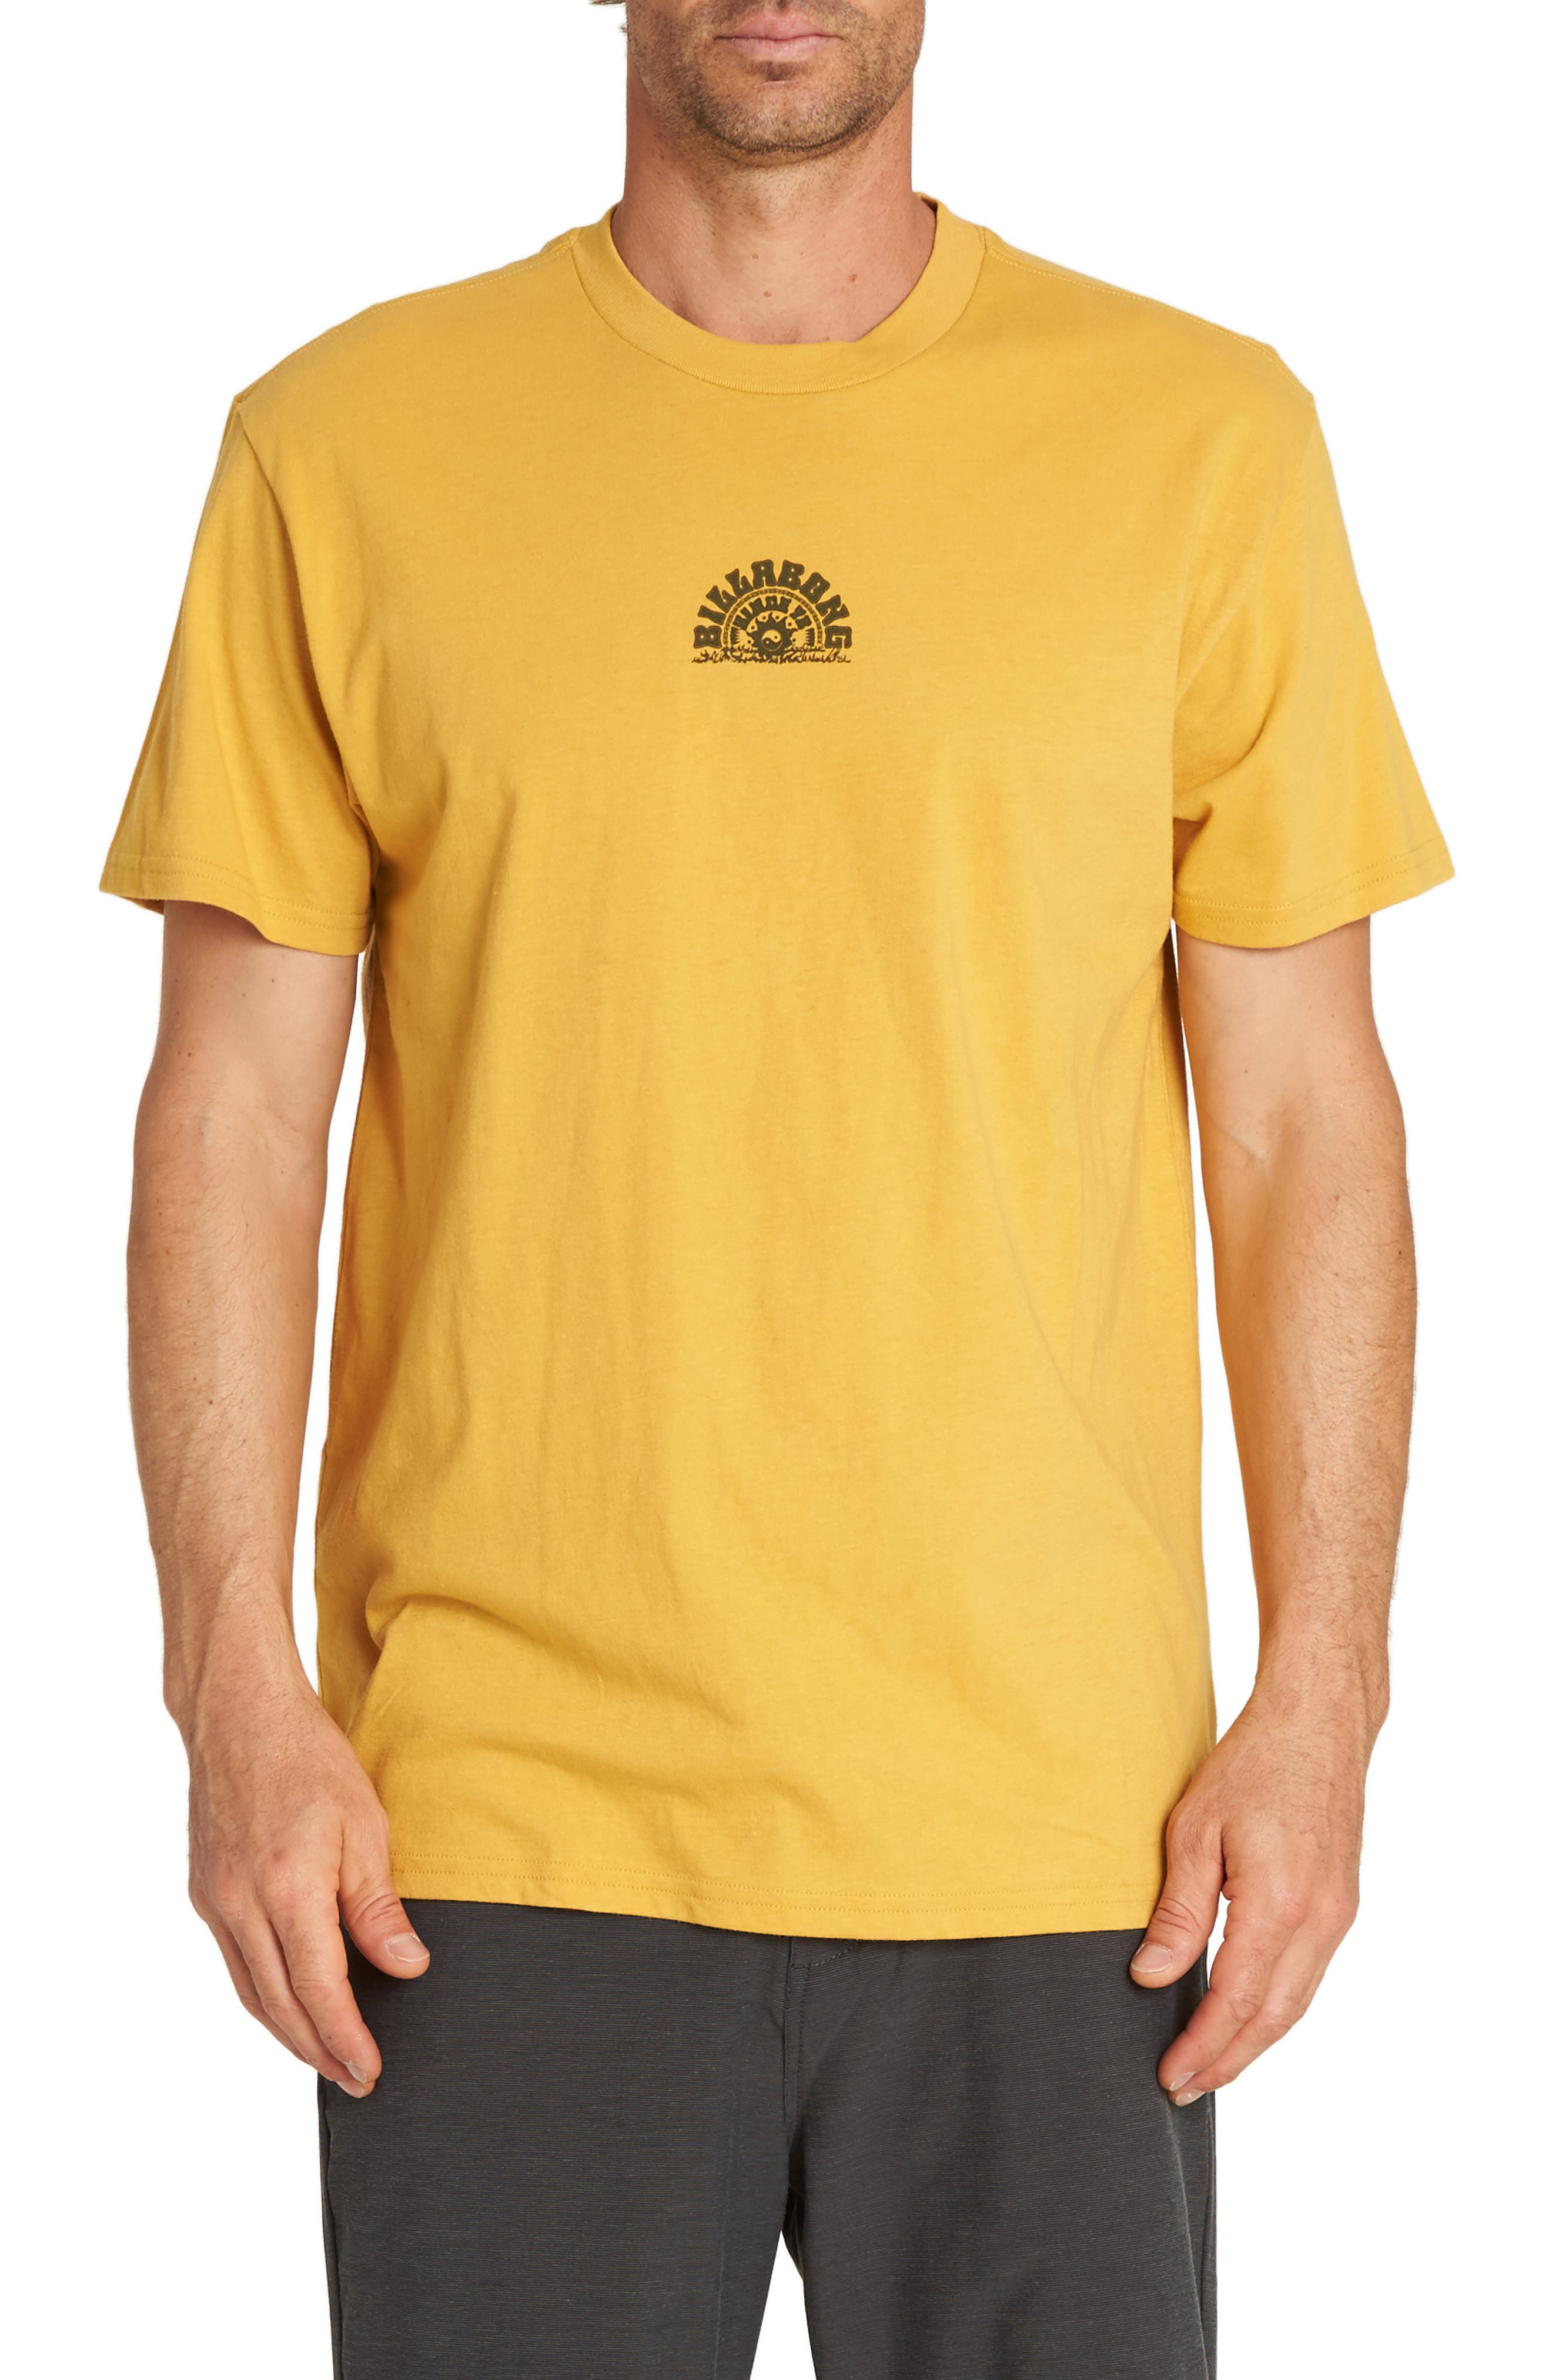 Wild & Free Graphic T-Shirt,                             Main thumbnail 1, color,                             GOLD